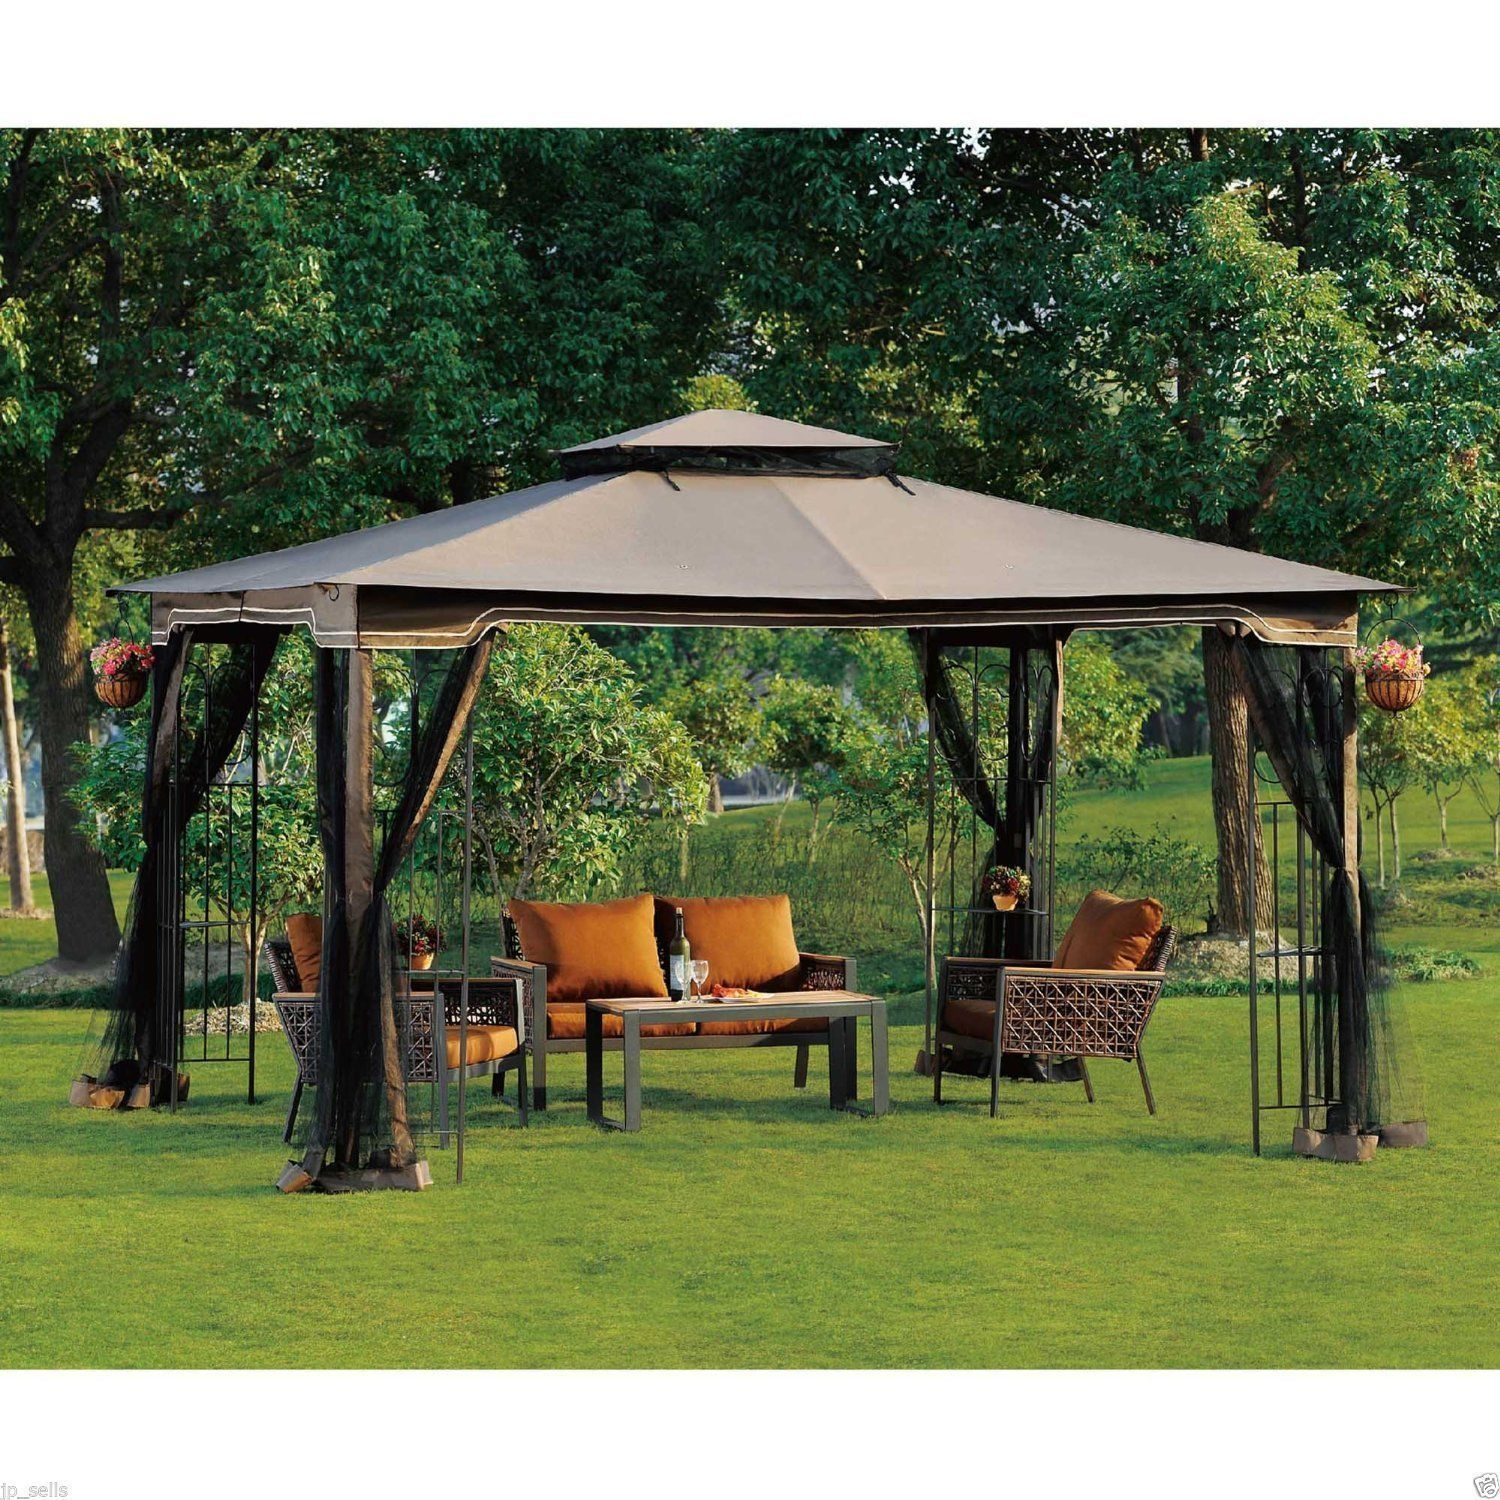 Screened Gazebo | Screen Gazebo Home Depot | 8x8 Screen Gazebo